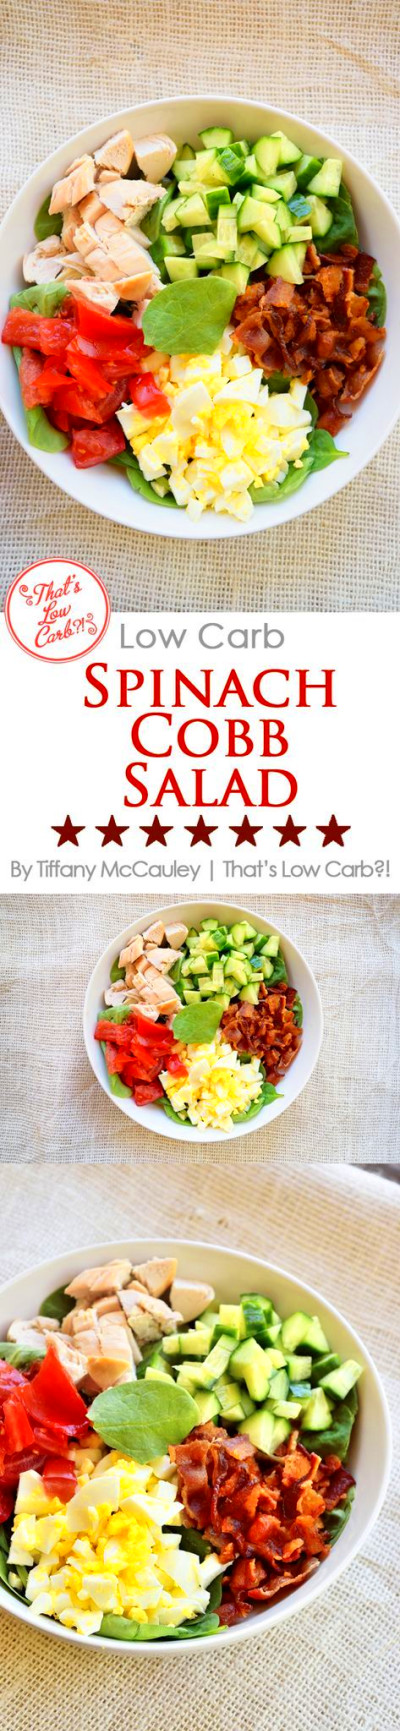 This delightful, low carb salad is filling, nutritious and fits a low carb eating plan perfec ...